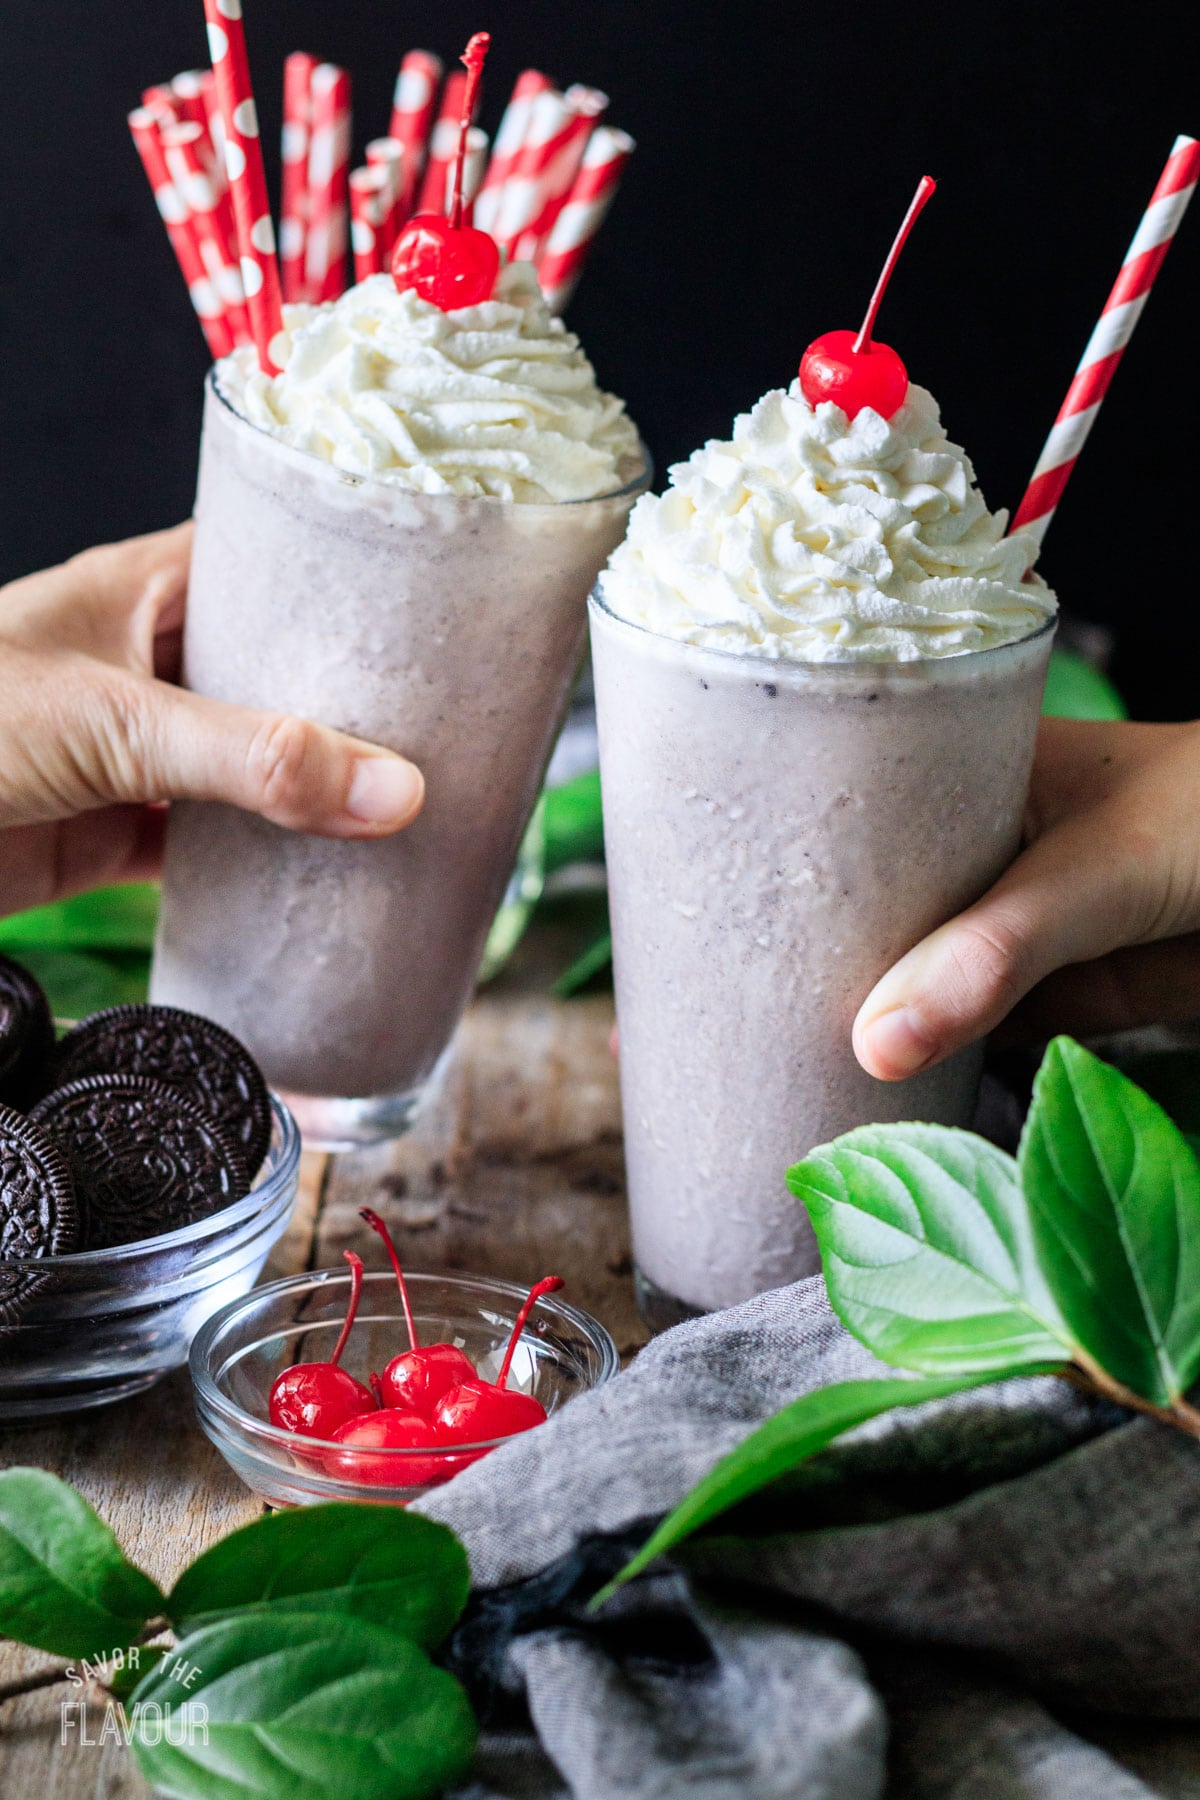 people doing a toast with two cookies and cream milkshakes